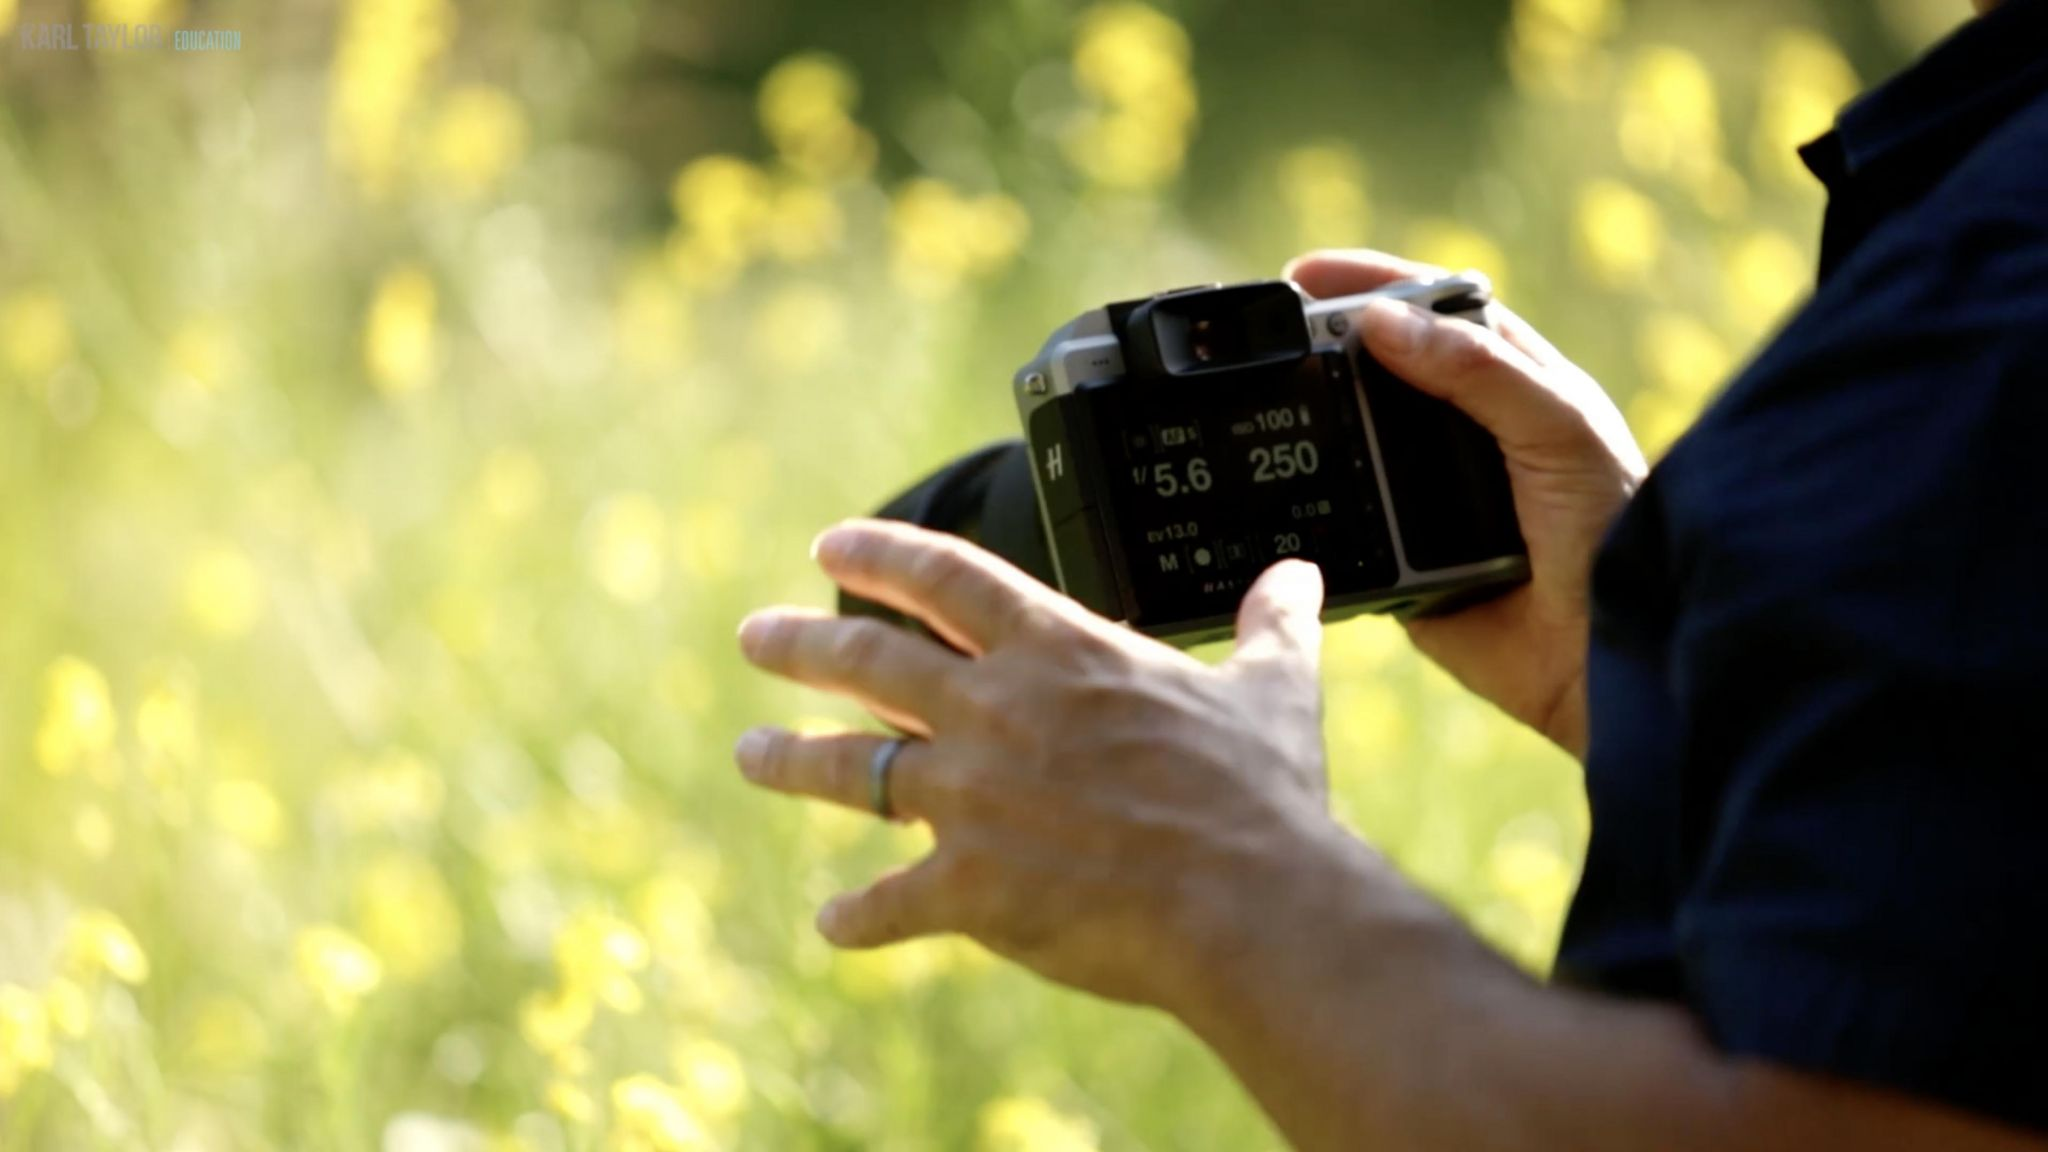 X1D Hasselblad Camera Photography Review (and portrait shoot!) – Part 1